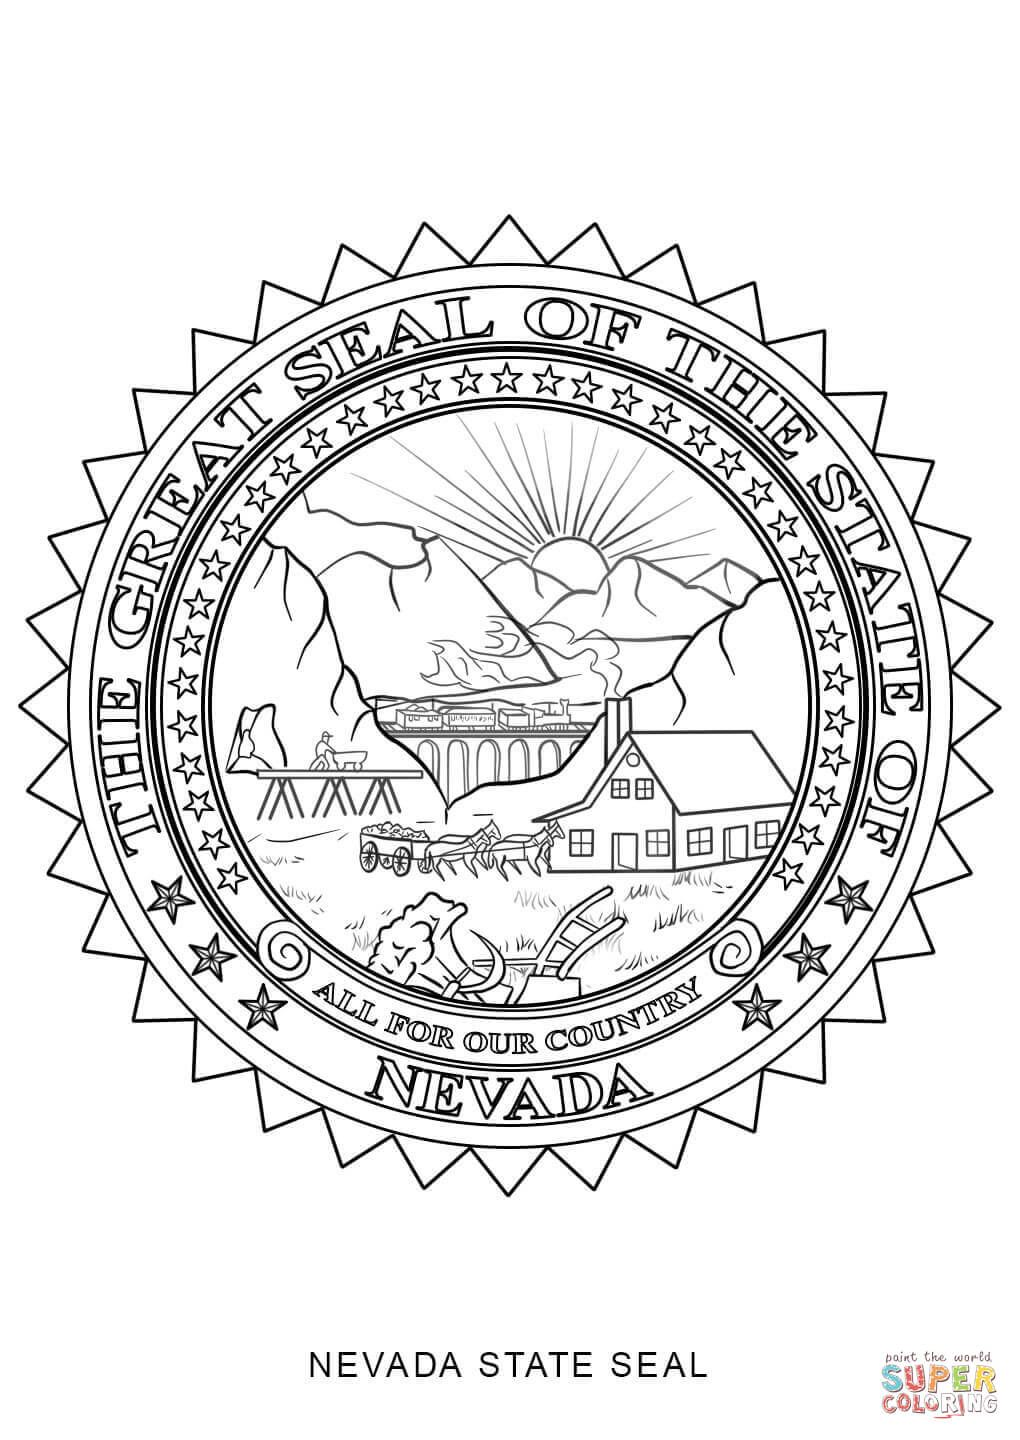 Nevada State Seal Coloring Page | School Project Ideas | Pinterest ...